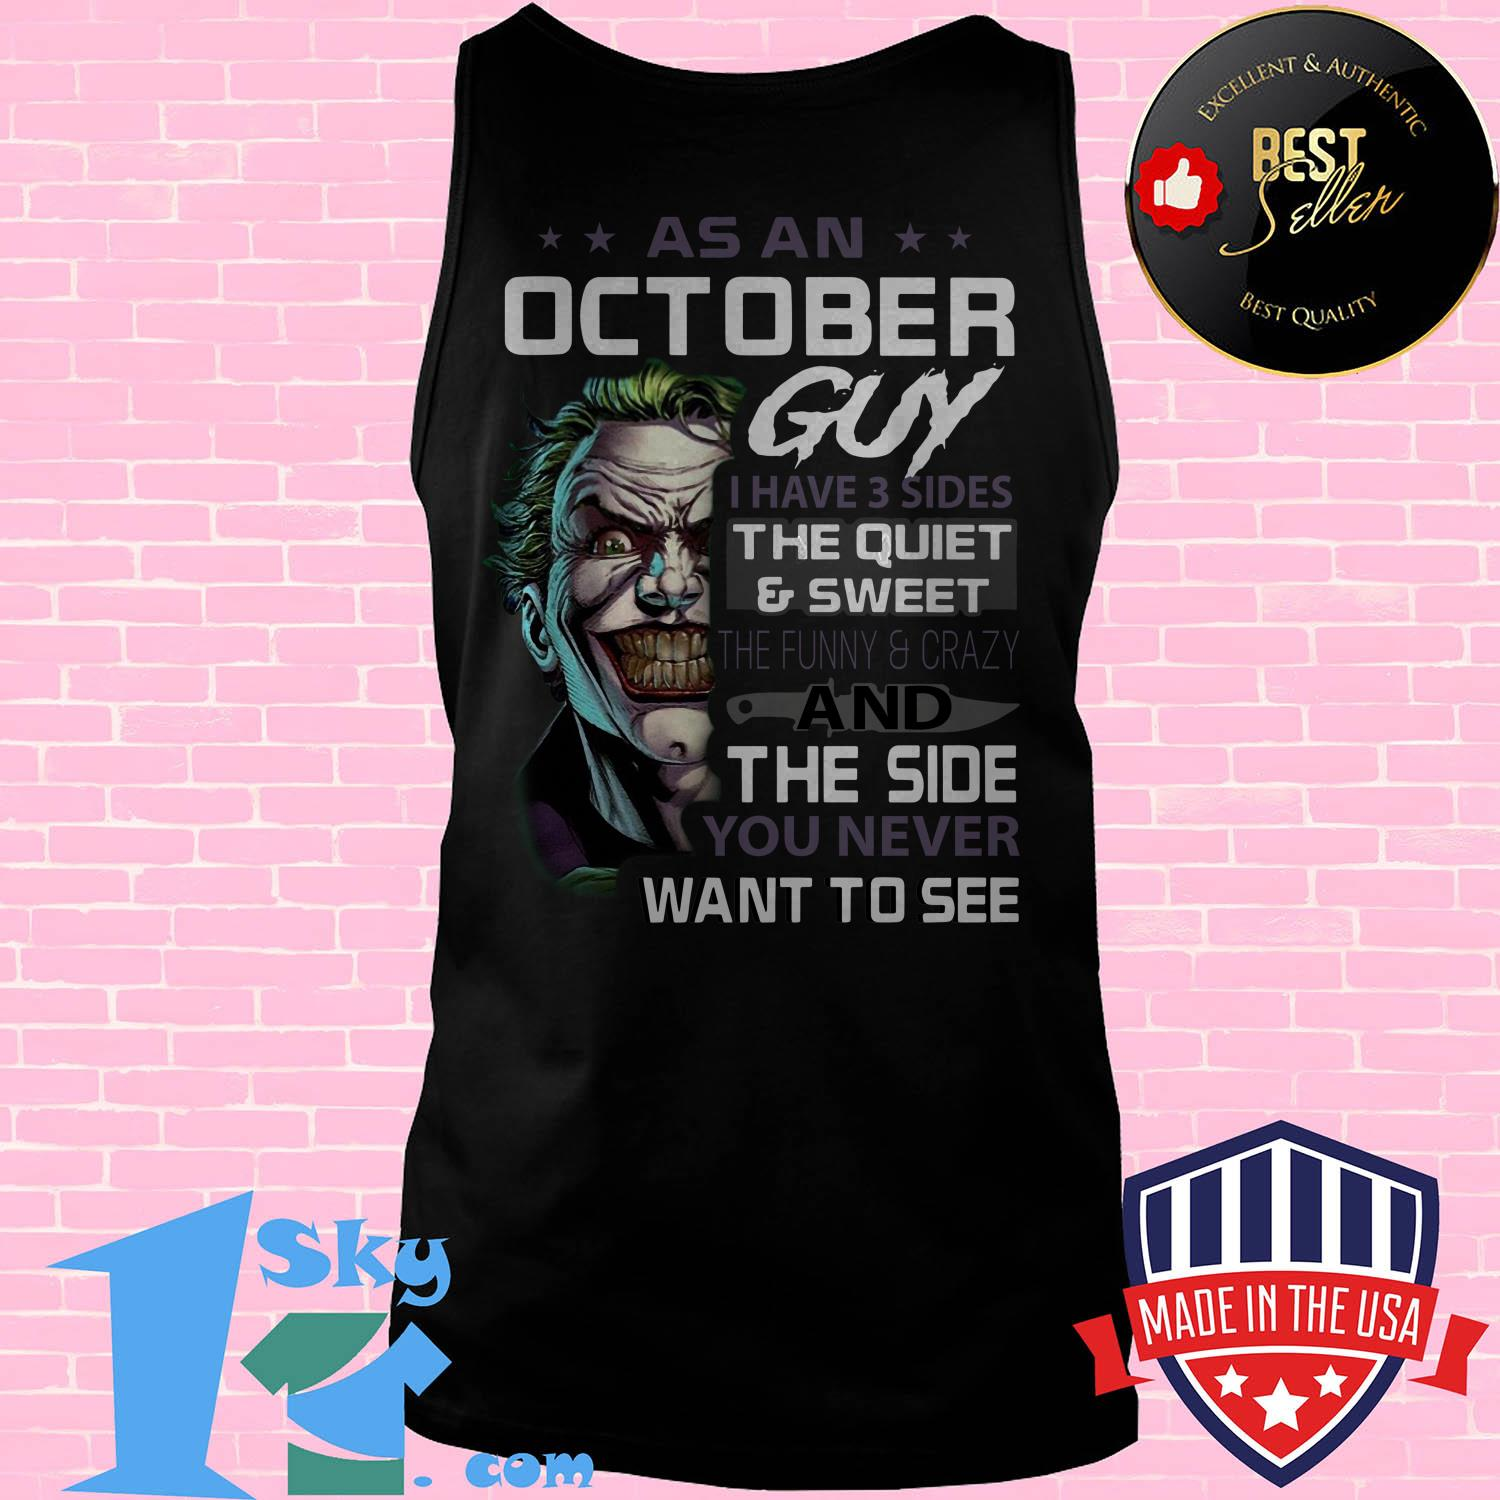 premium joker as an october guy i have 3 sides the quiet sweet the funny crazy and the side you never want to see tank top 1 - Premium Joker As An October Guy I Have 3 Sides The Quiet & Sweet The Funny & Crazy And The Side You Never Want To See shirt